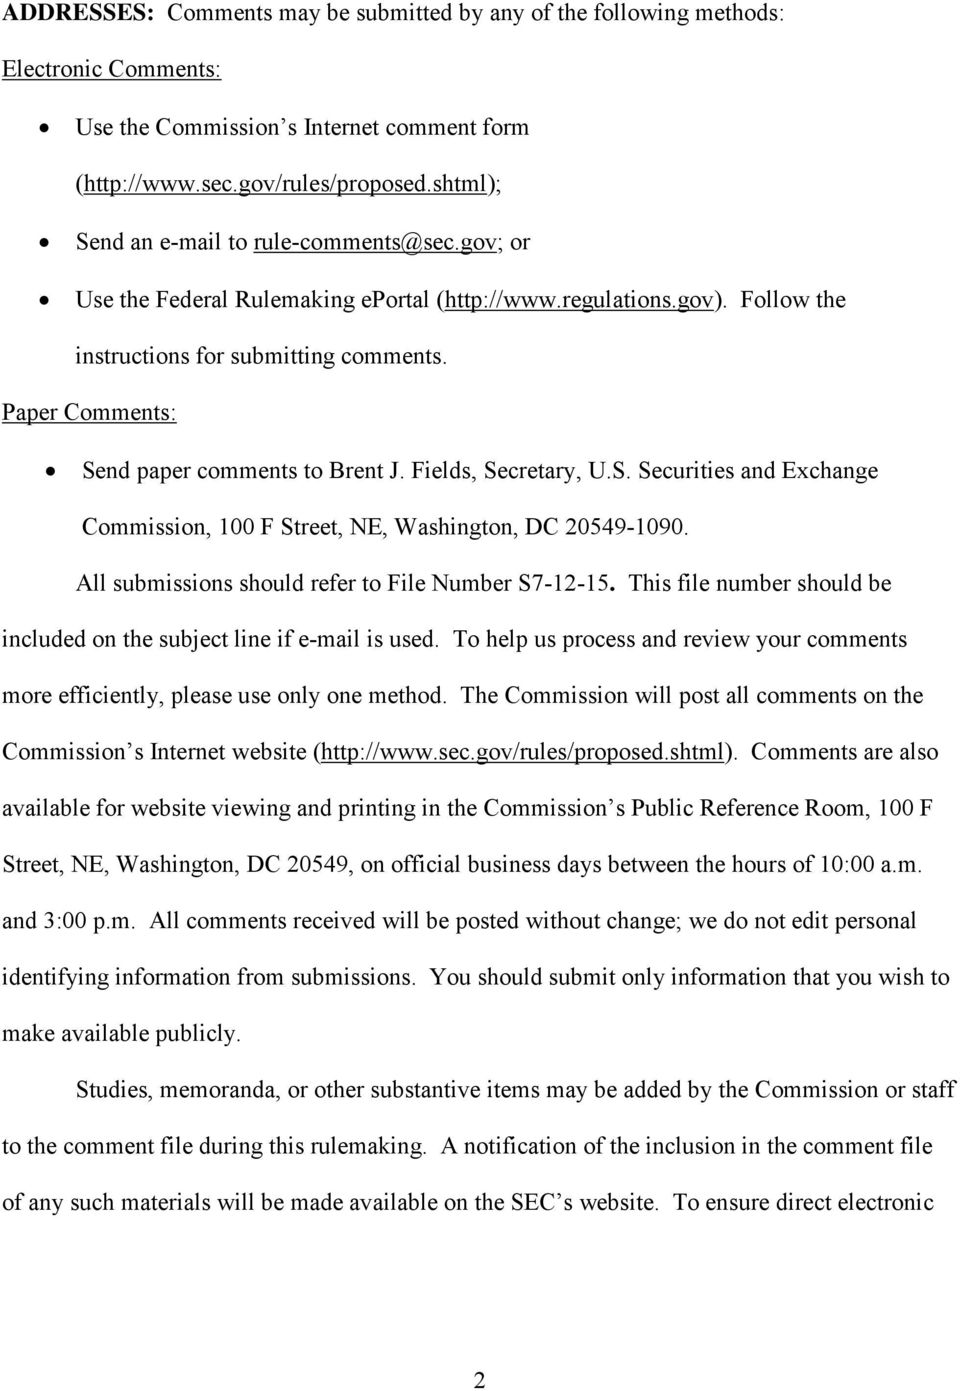 Paper Comments: Send paper comments to Brent J. Fields, Secretary, U.S. Securities and Exchange Commission, 100 F Street, NE, Washington, DC 20549-1090.